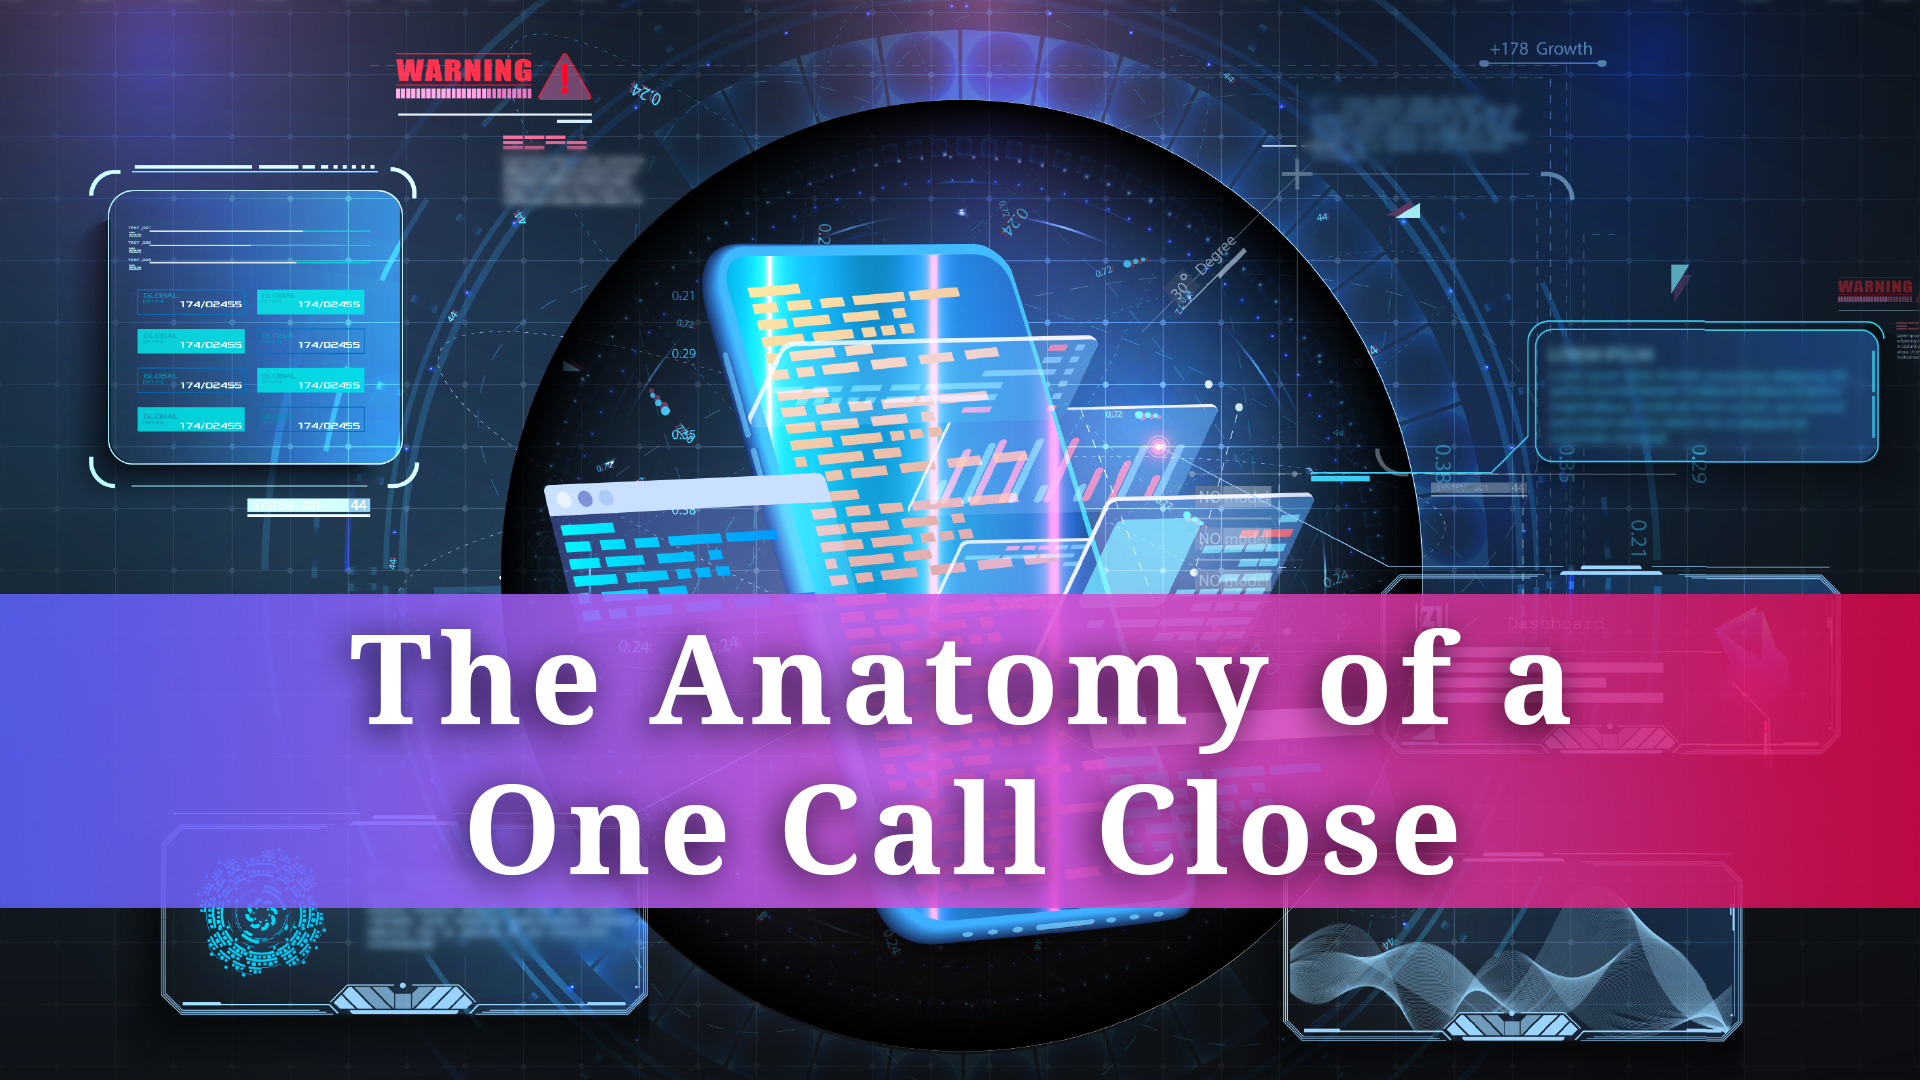 The Anatomy of a One Call Close